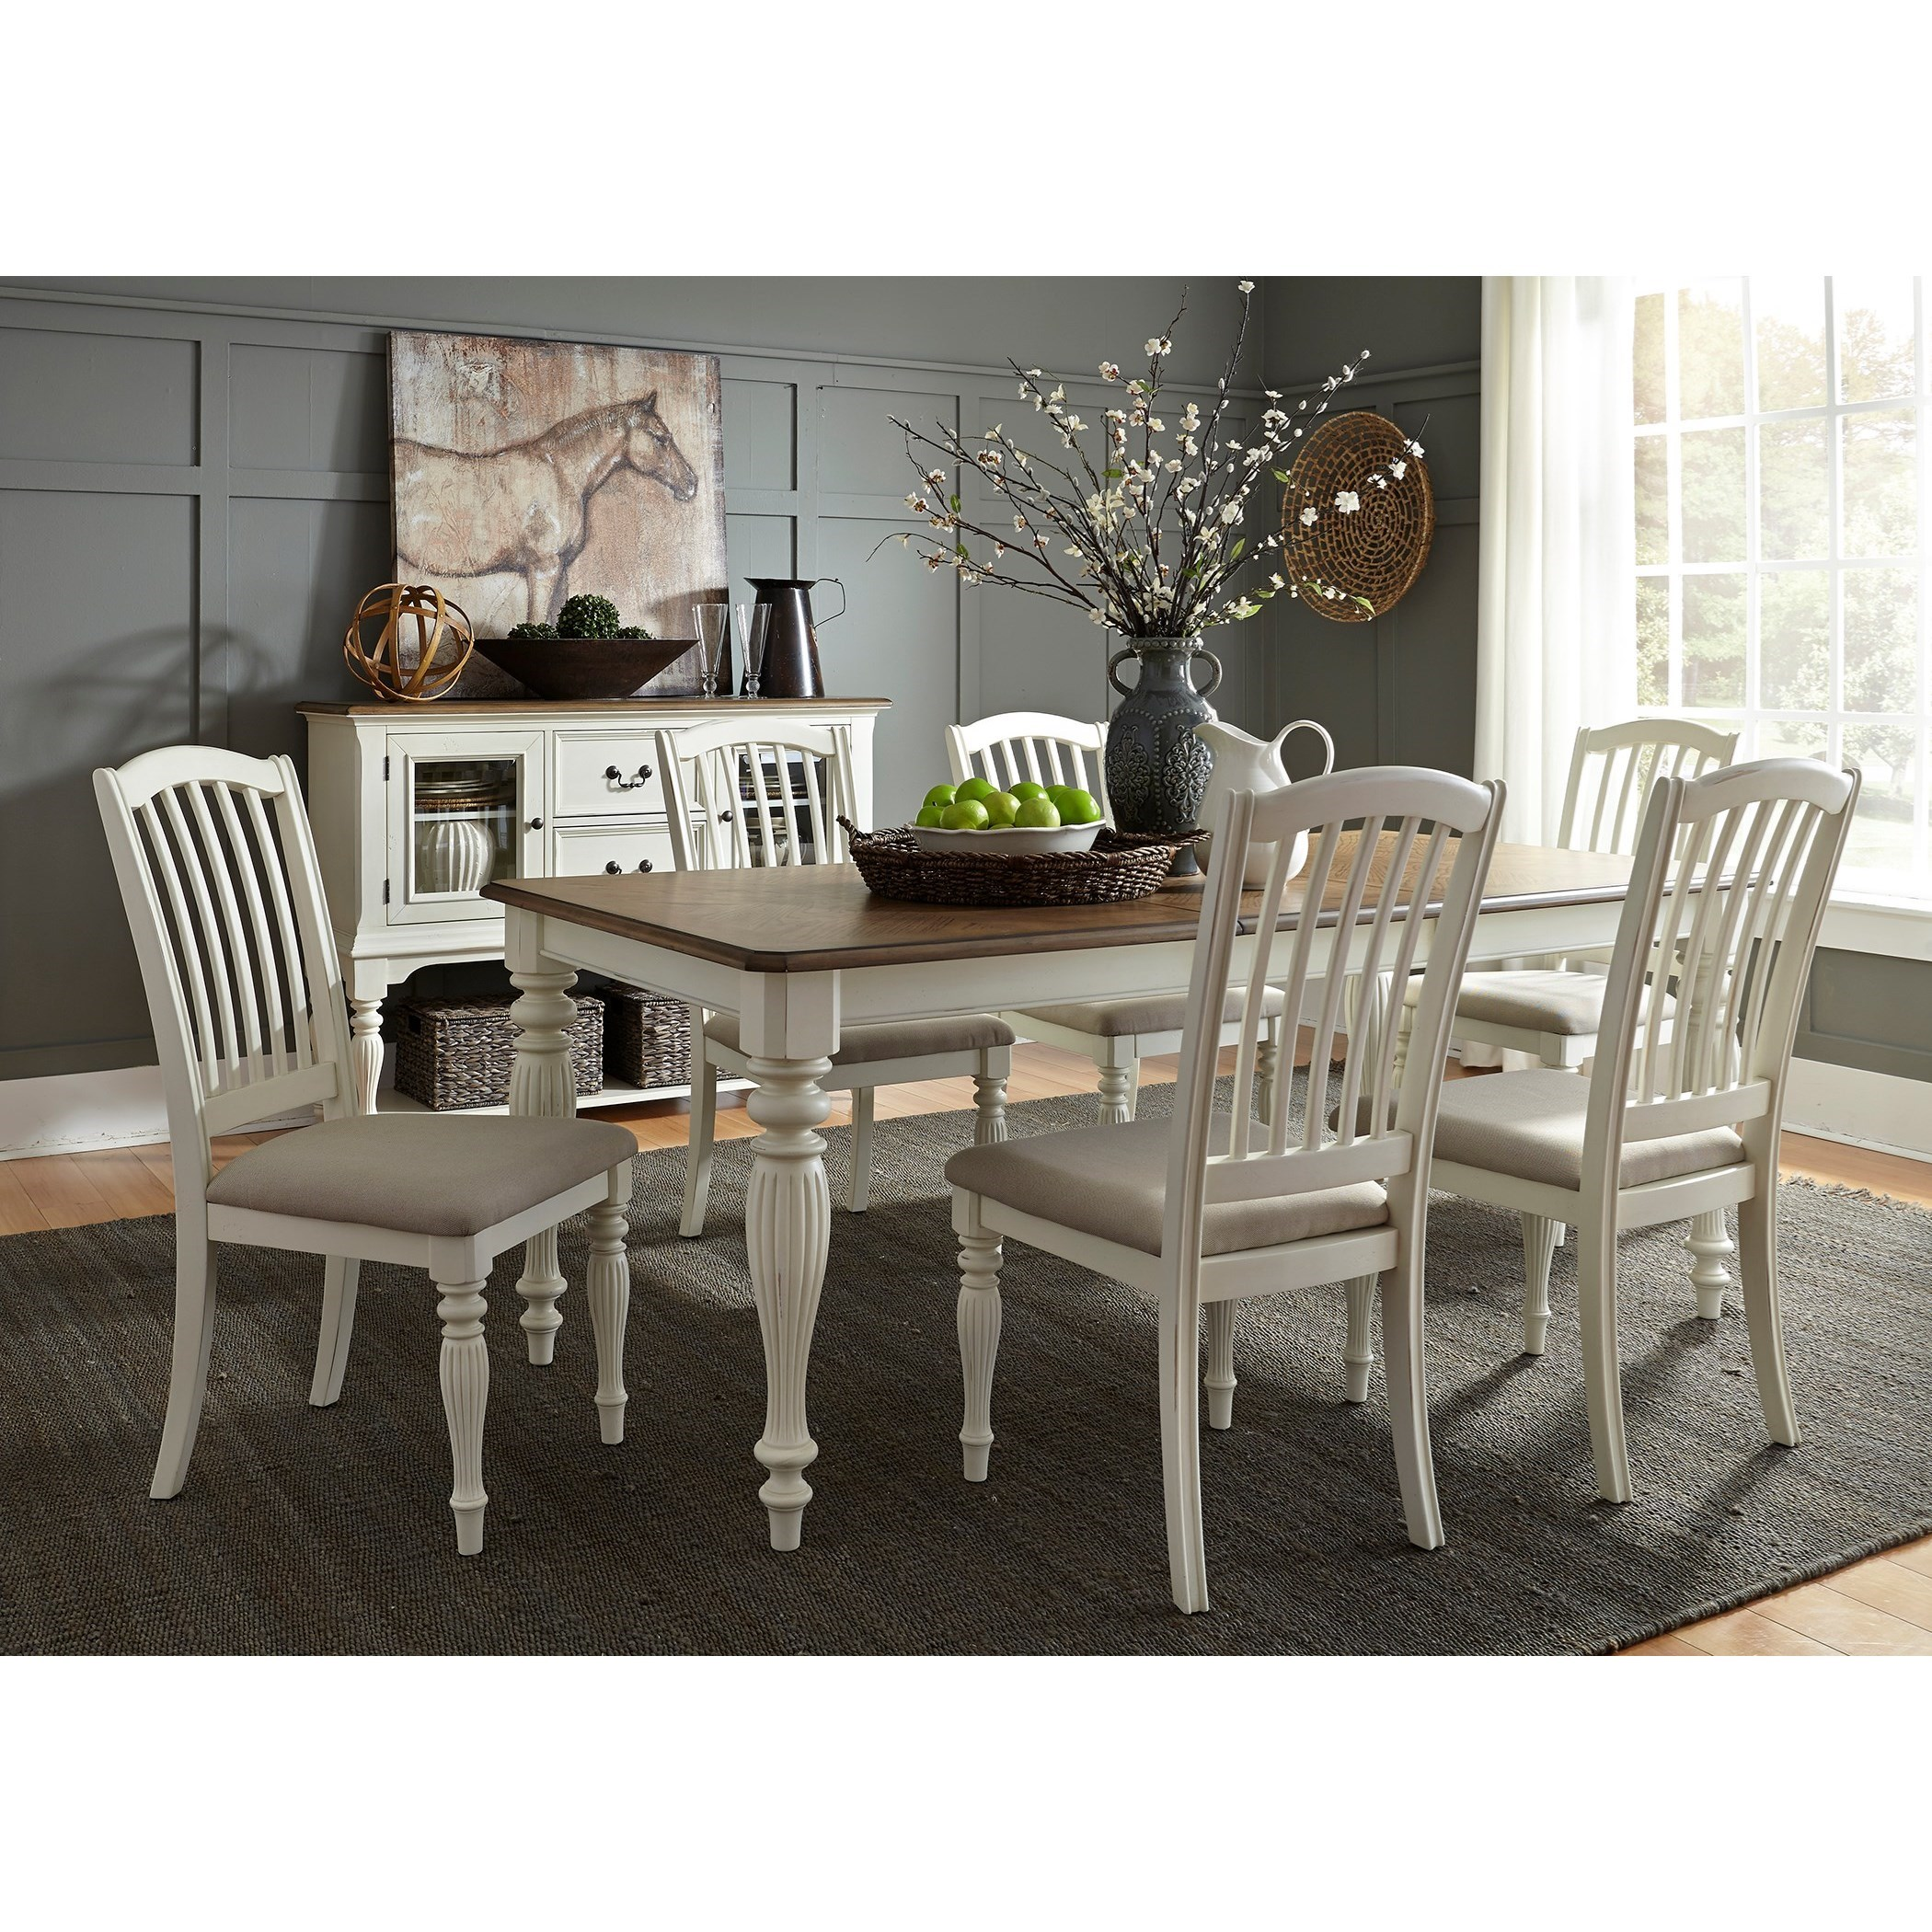 Cumberland Creek Dining 7 Piece Rectangular Table Set  by Liberty Furniture at Bullard Furniture